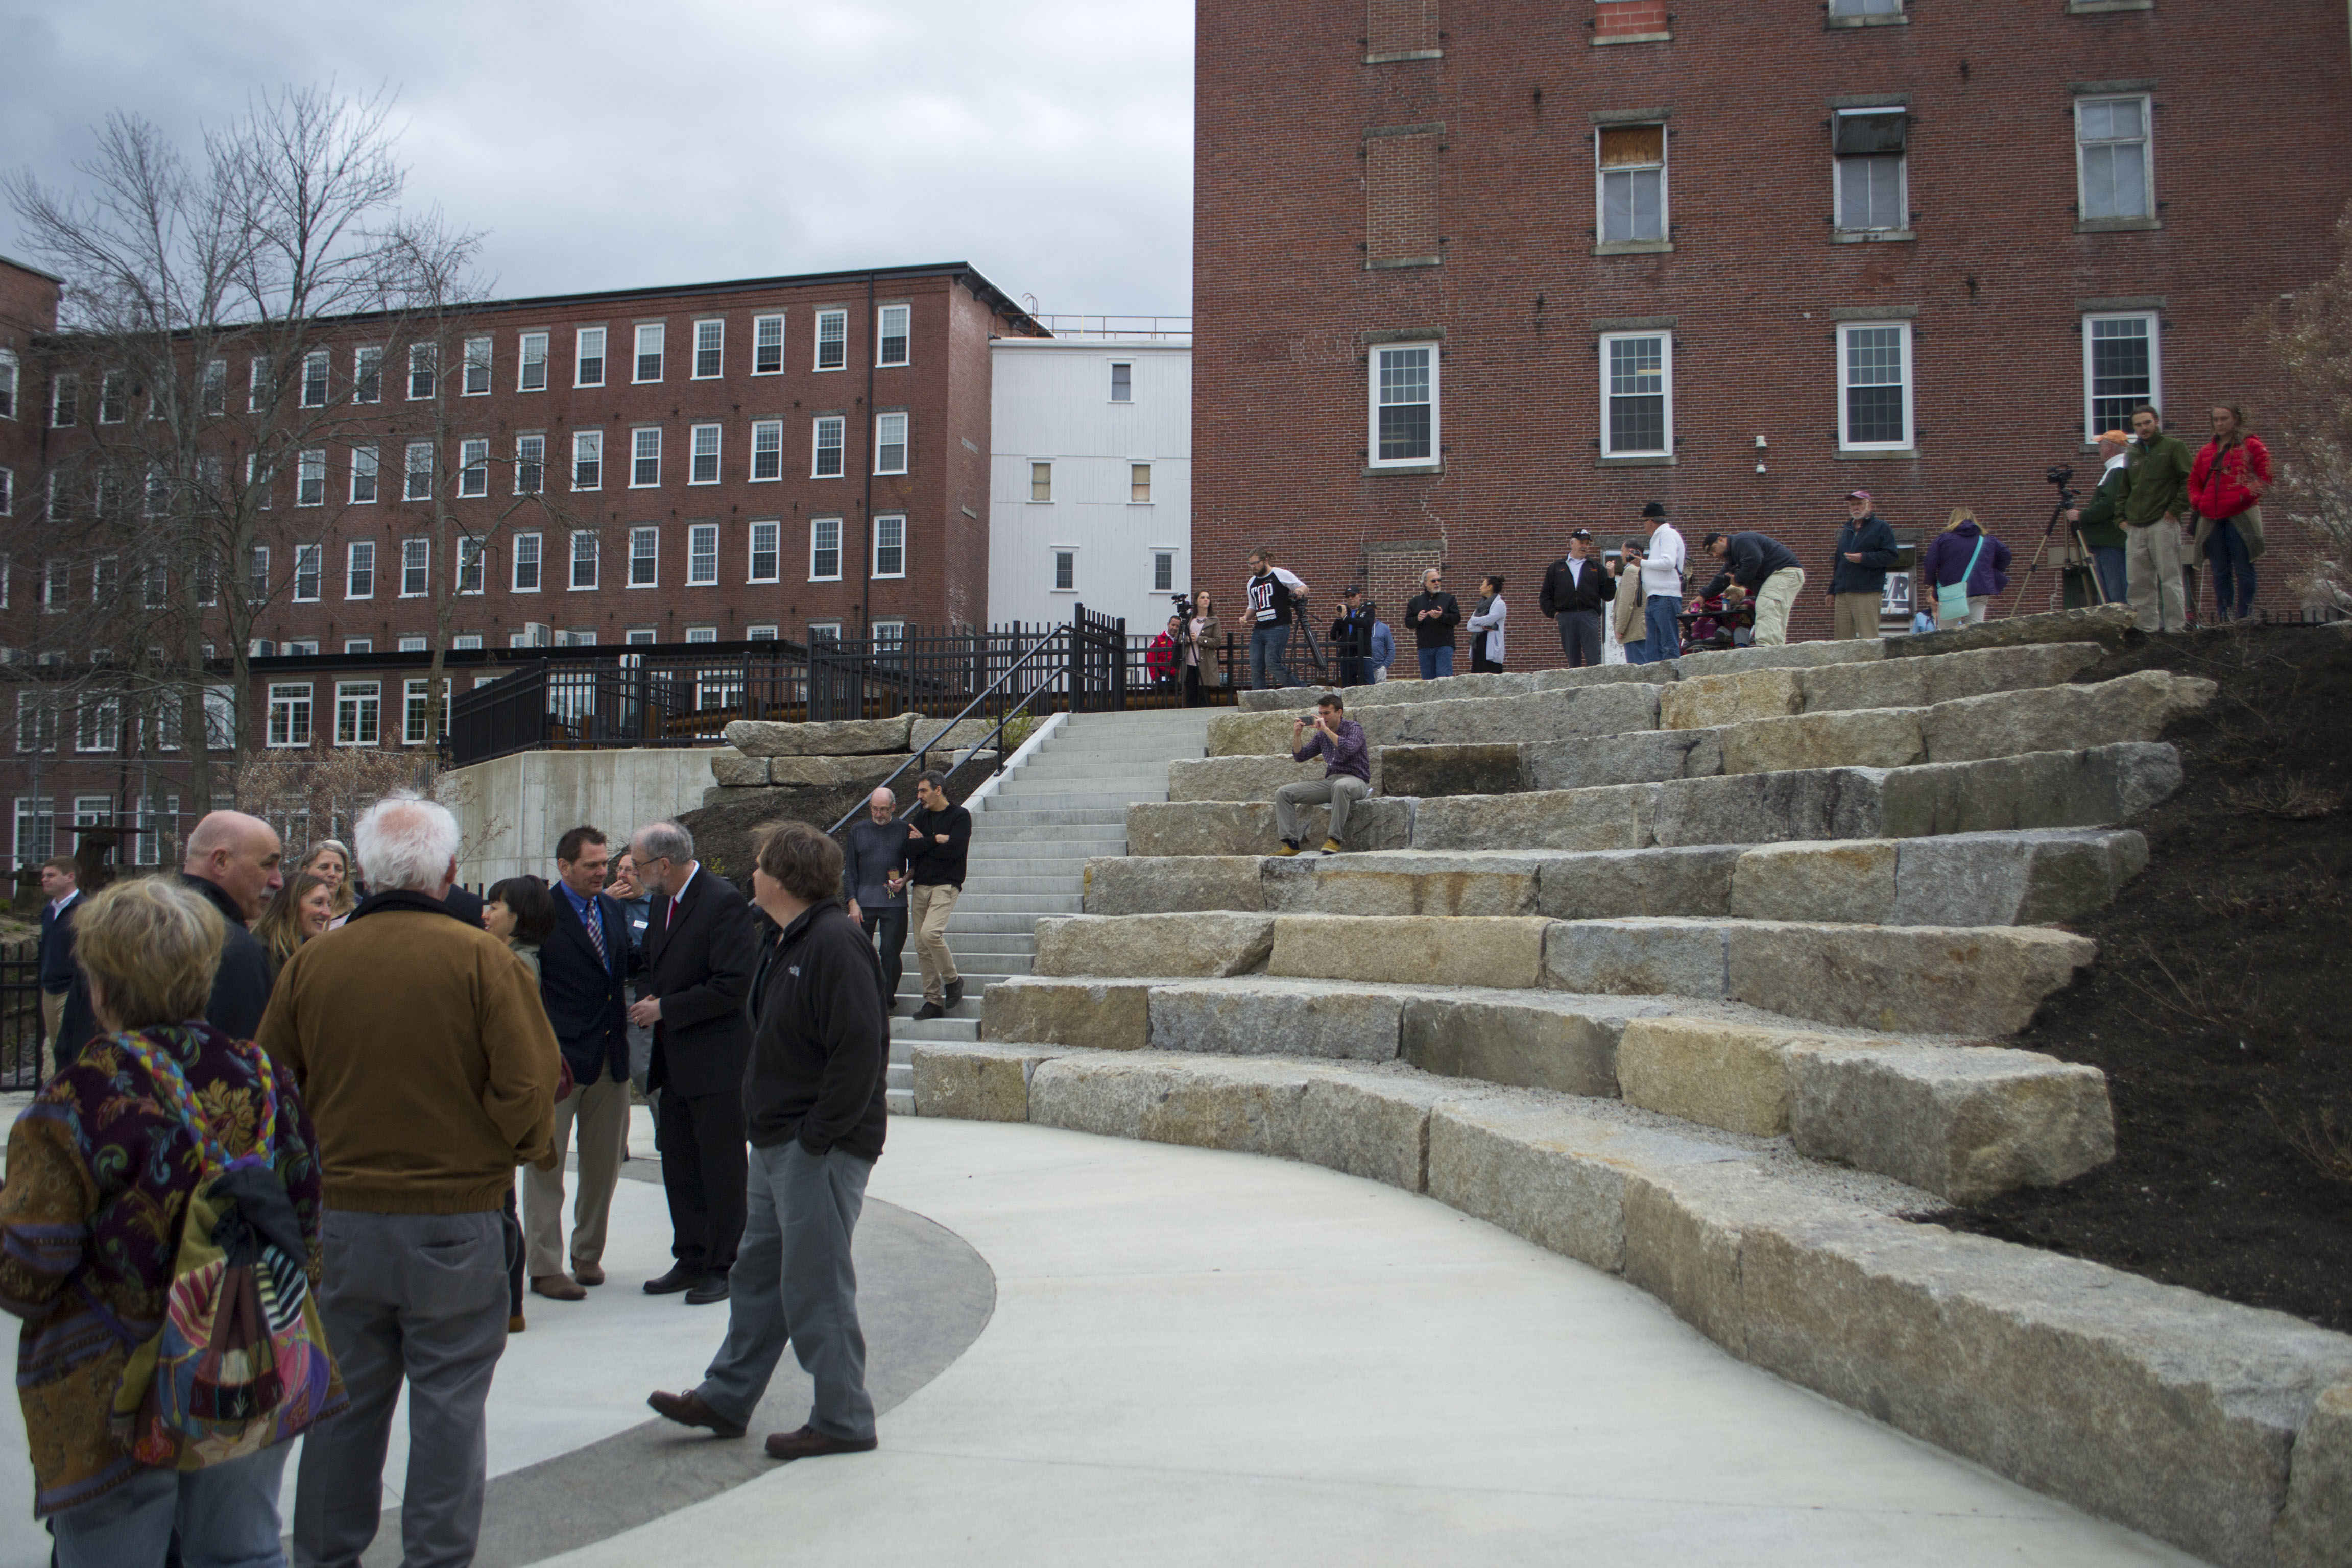 City residents, officials and members of the press gather at Laconia Plaza on Thursday. ALAN BENNETT/Journal Tribune